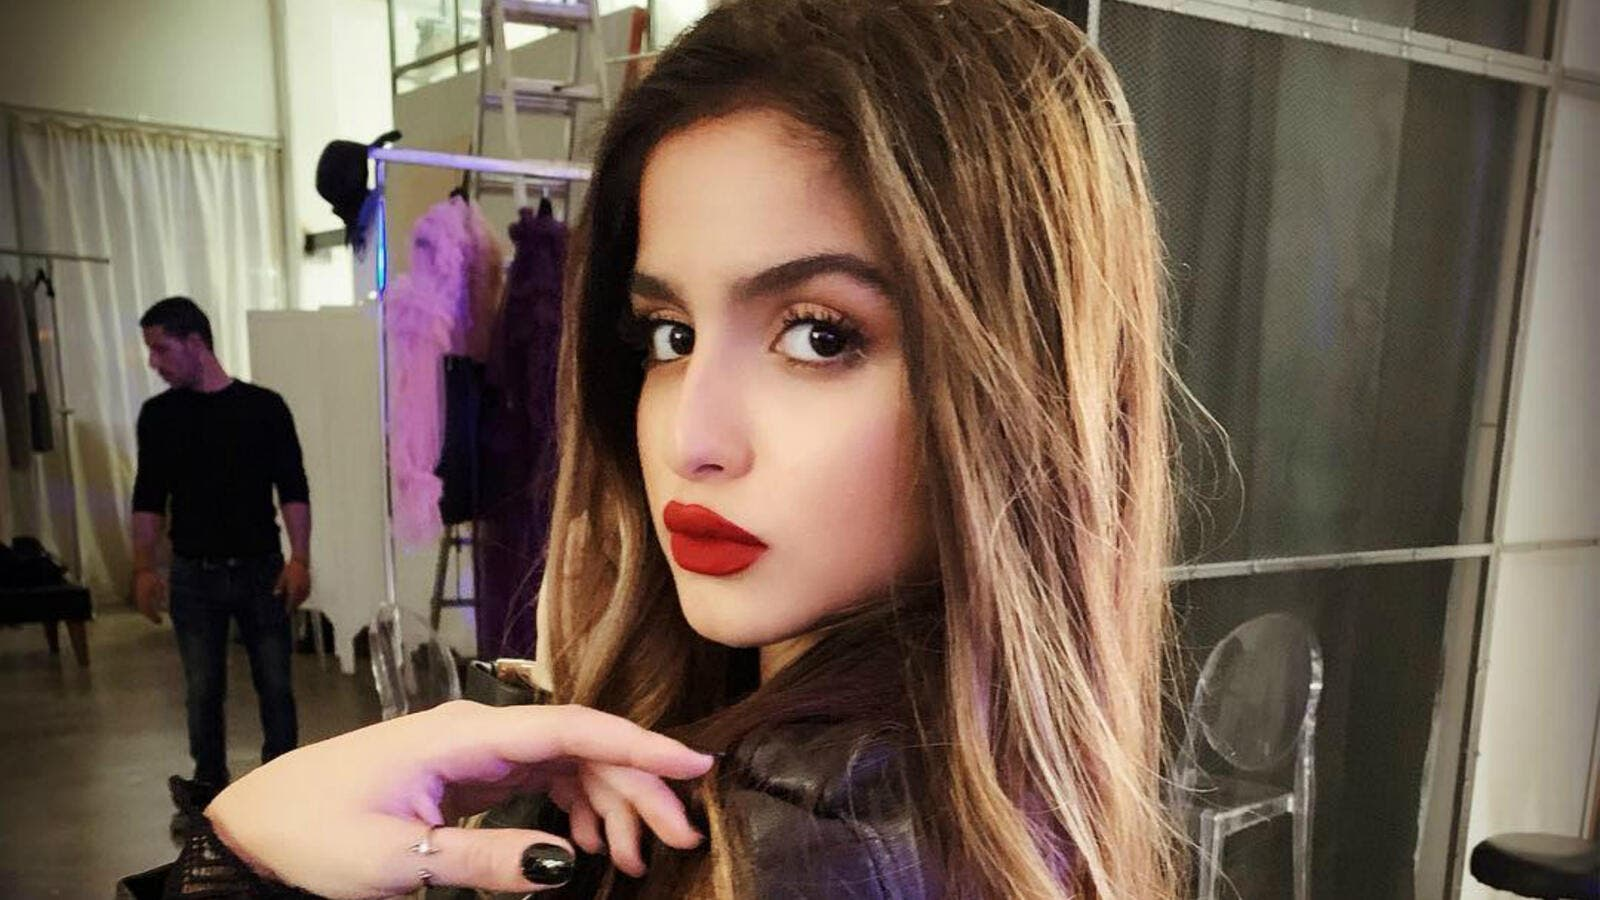 Hala Al Turk visited the mall to advertise her new cosmetic products that carry her name